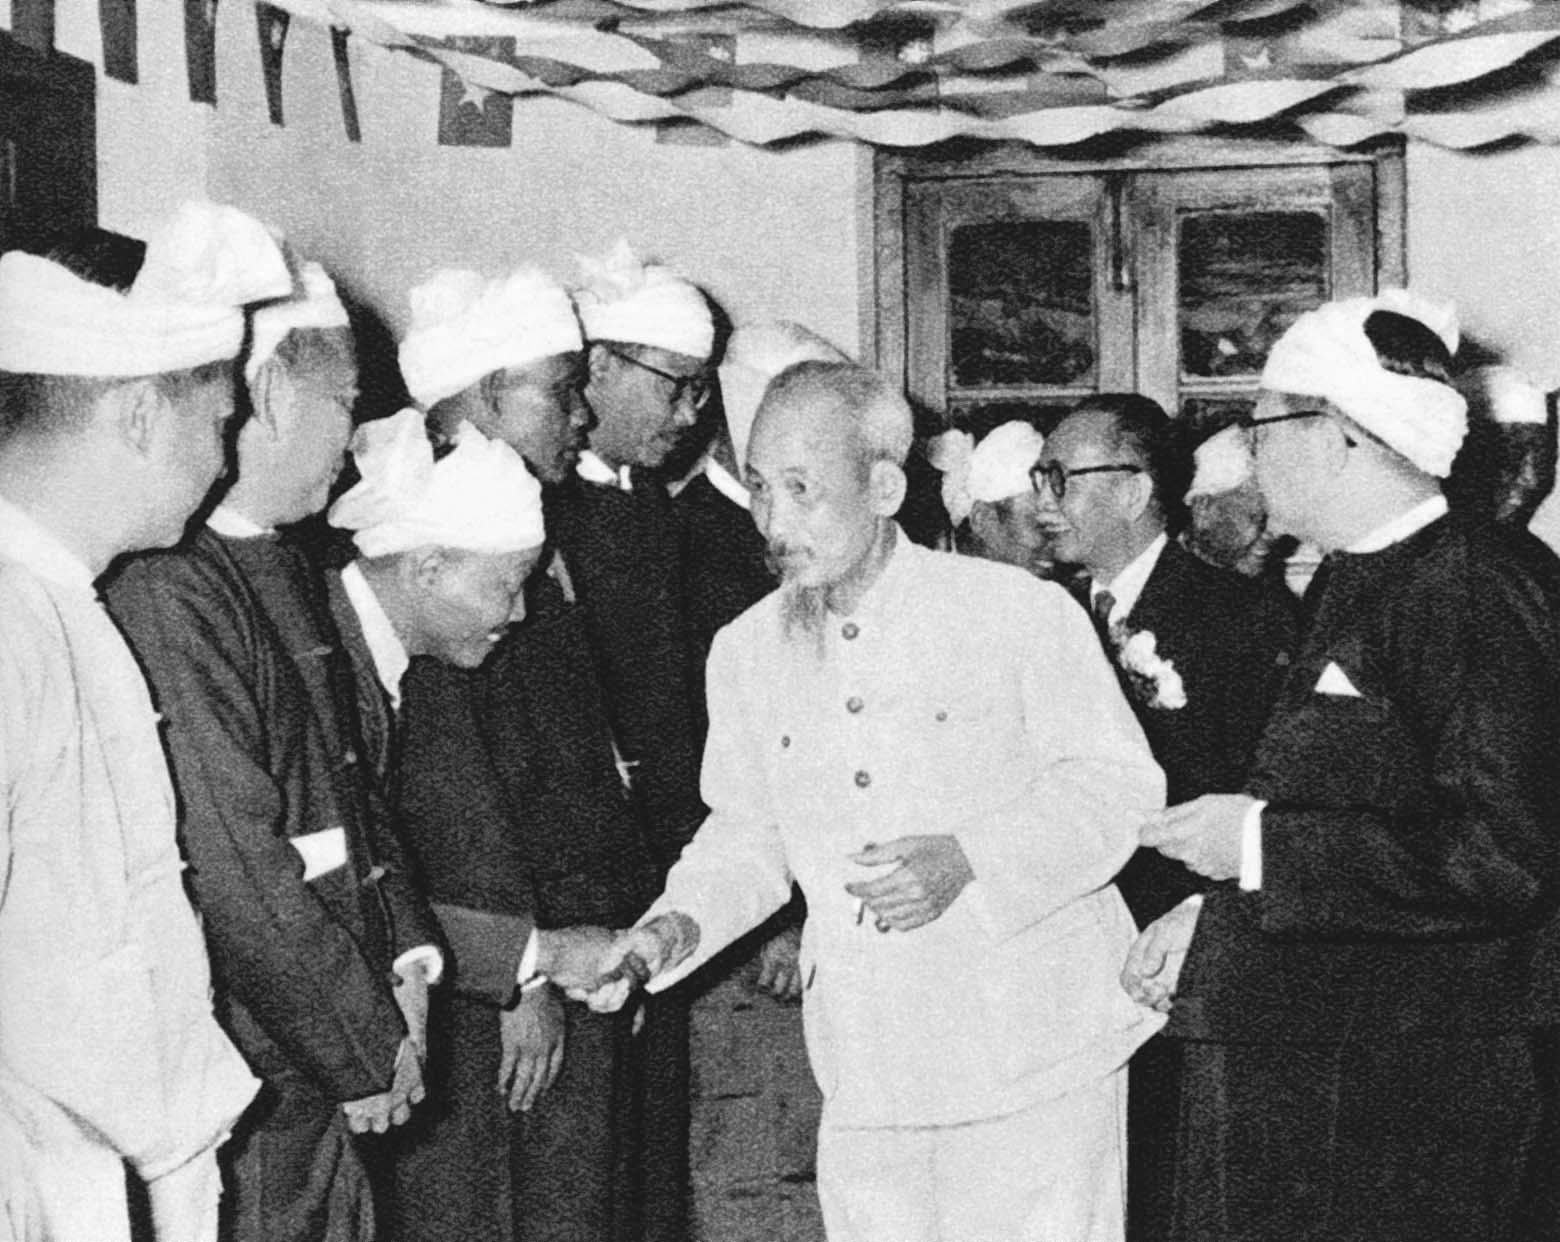 The Myanmar people welcoming President Ho Chi Minh during his friendship visit to the Republic Federation of Myanmar (February 14th, 1958)